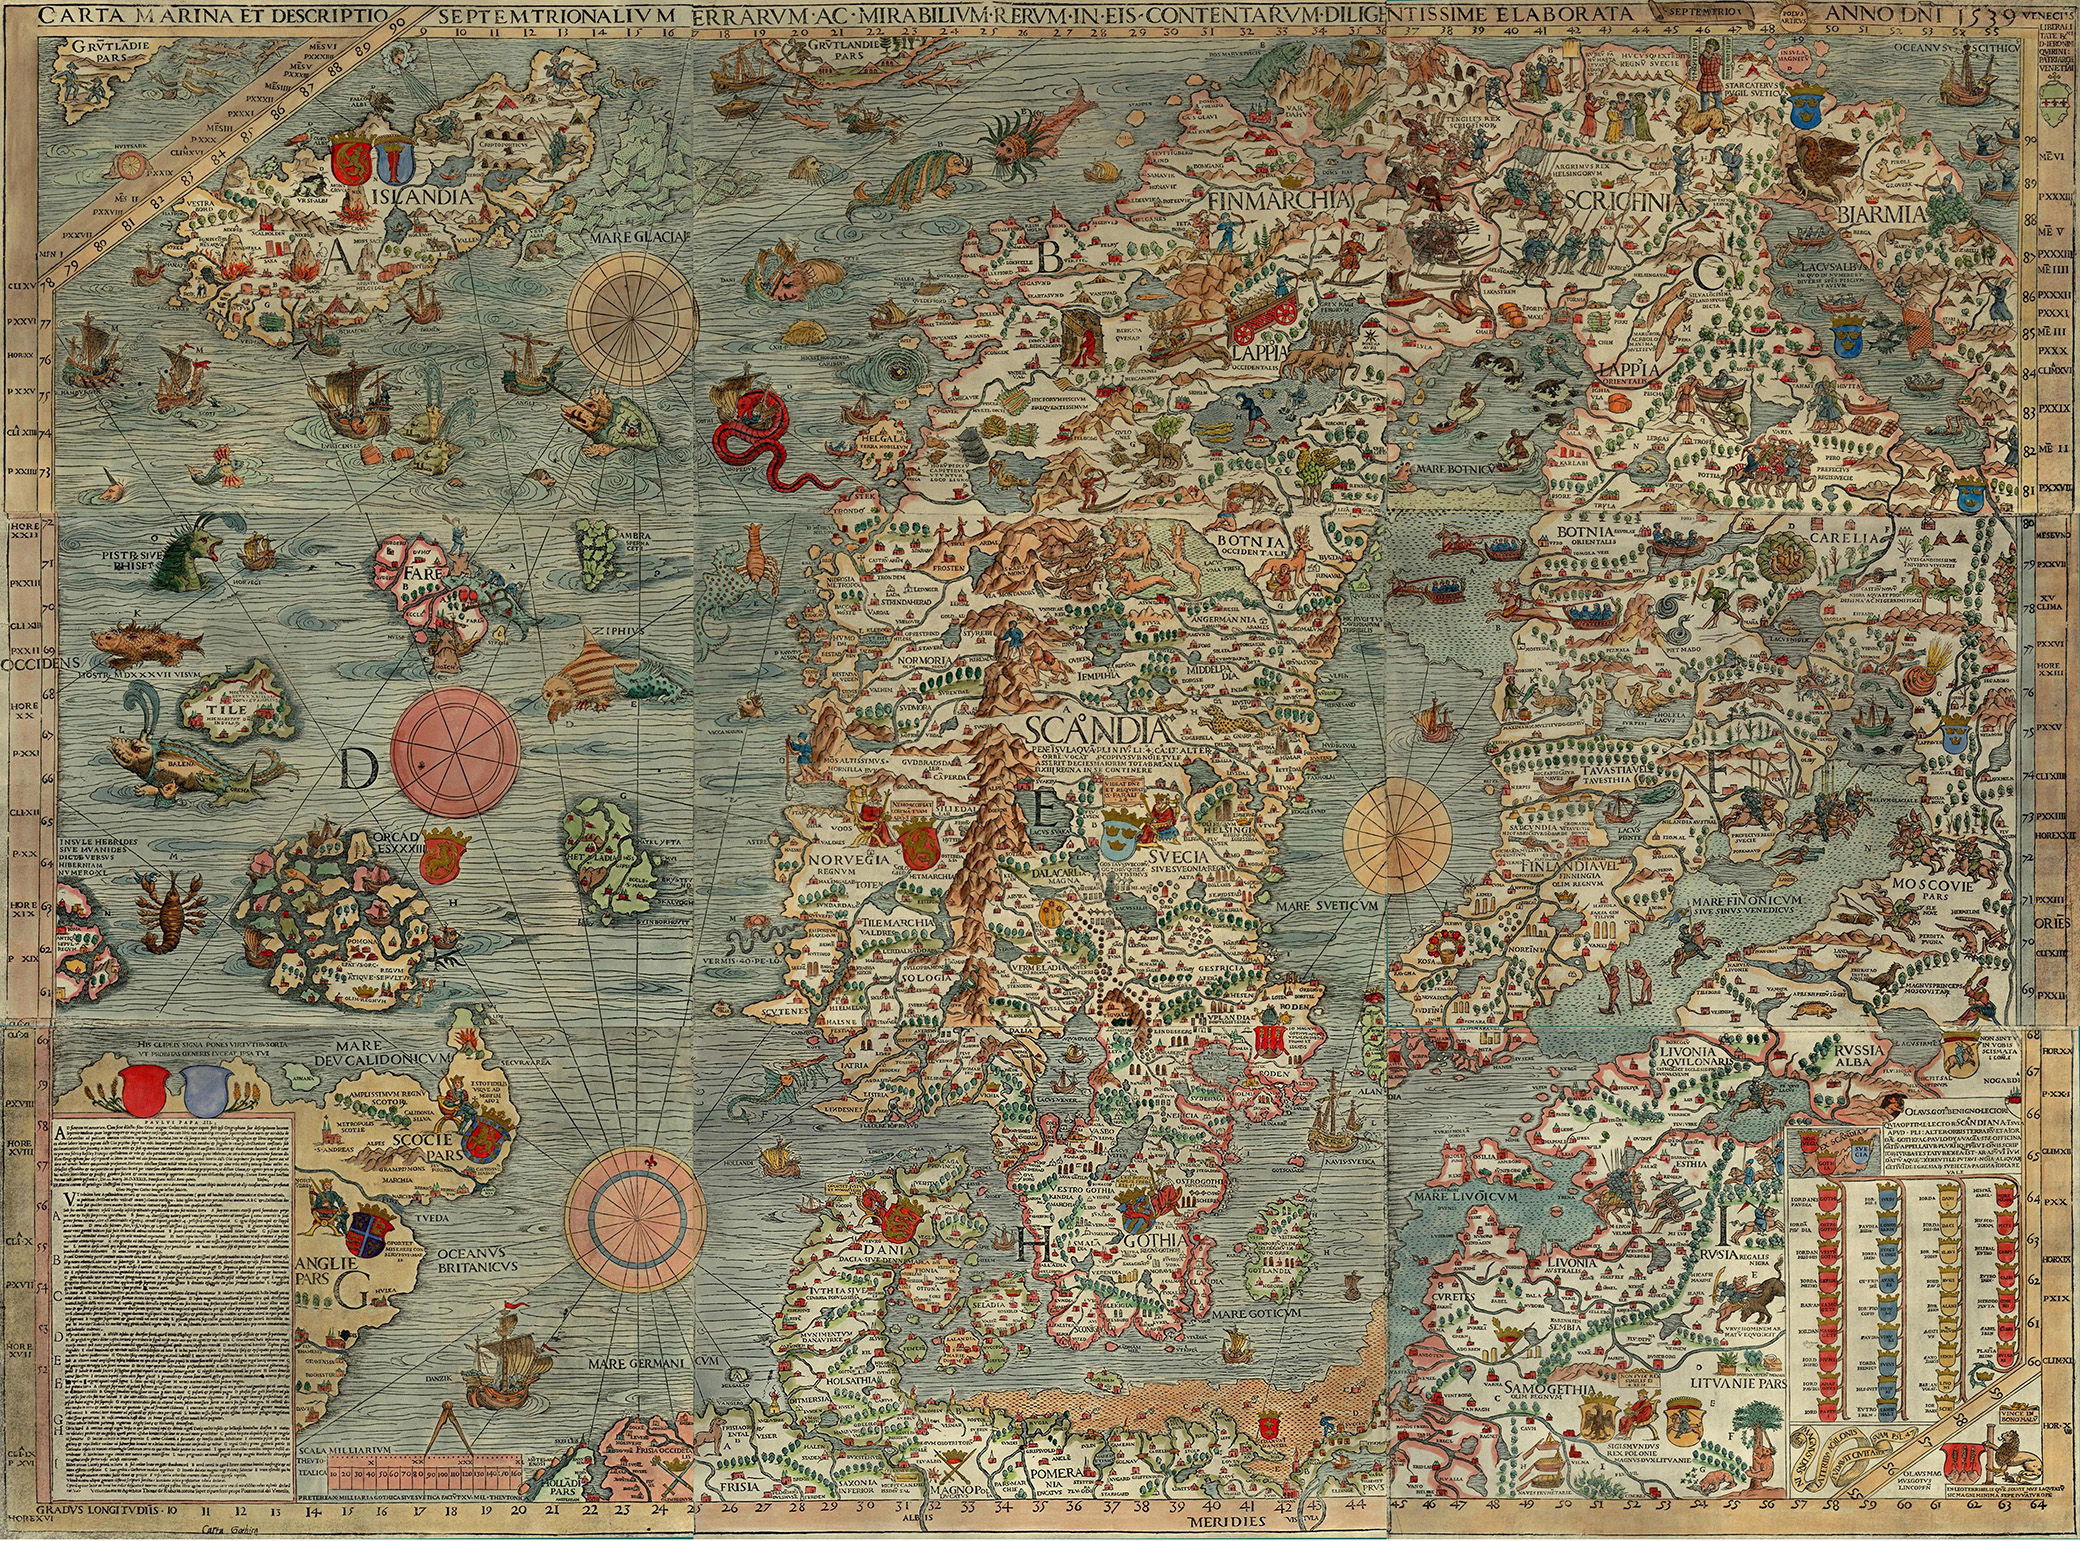 Mapping the Oceans in the Age of Discovery